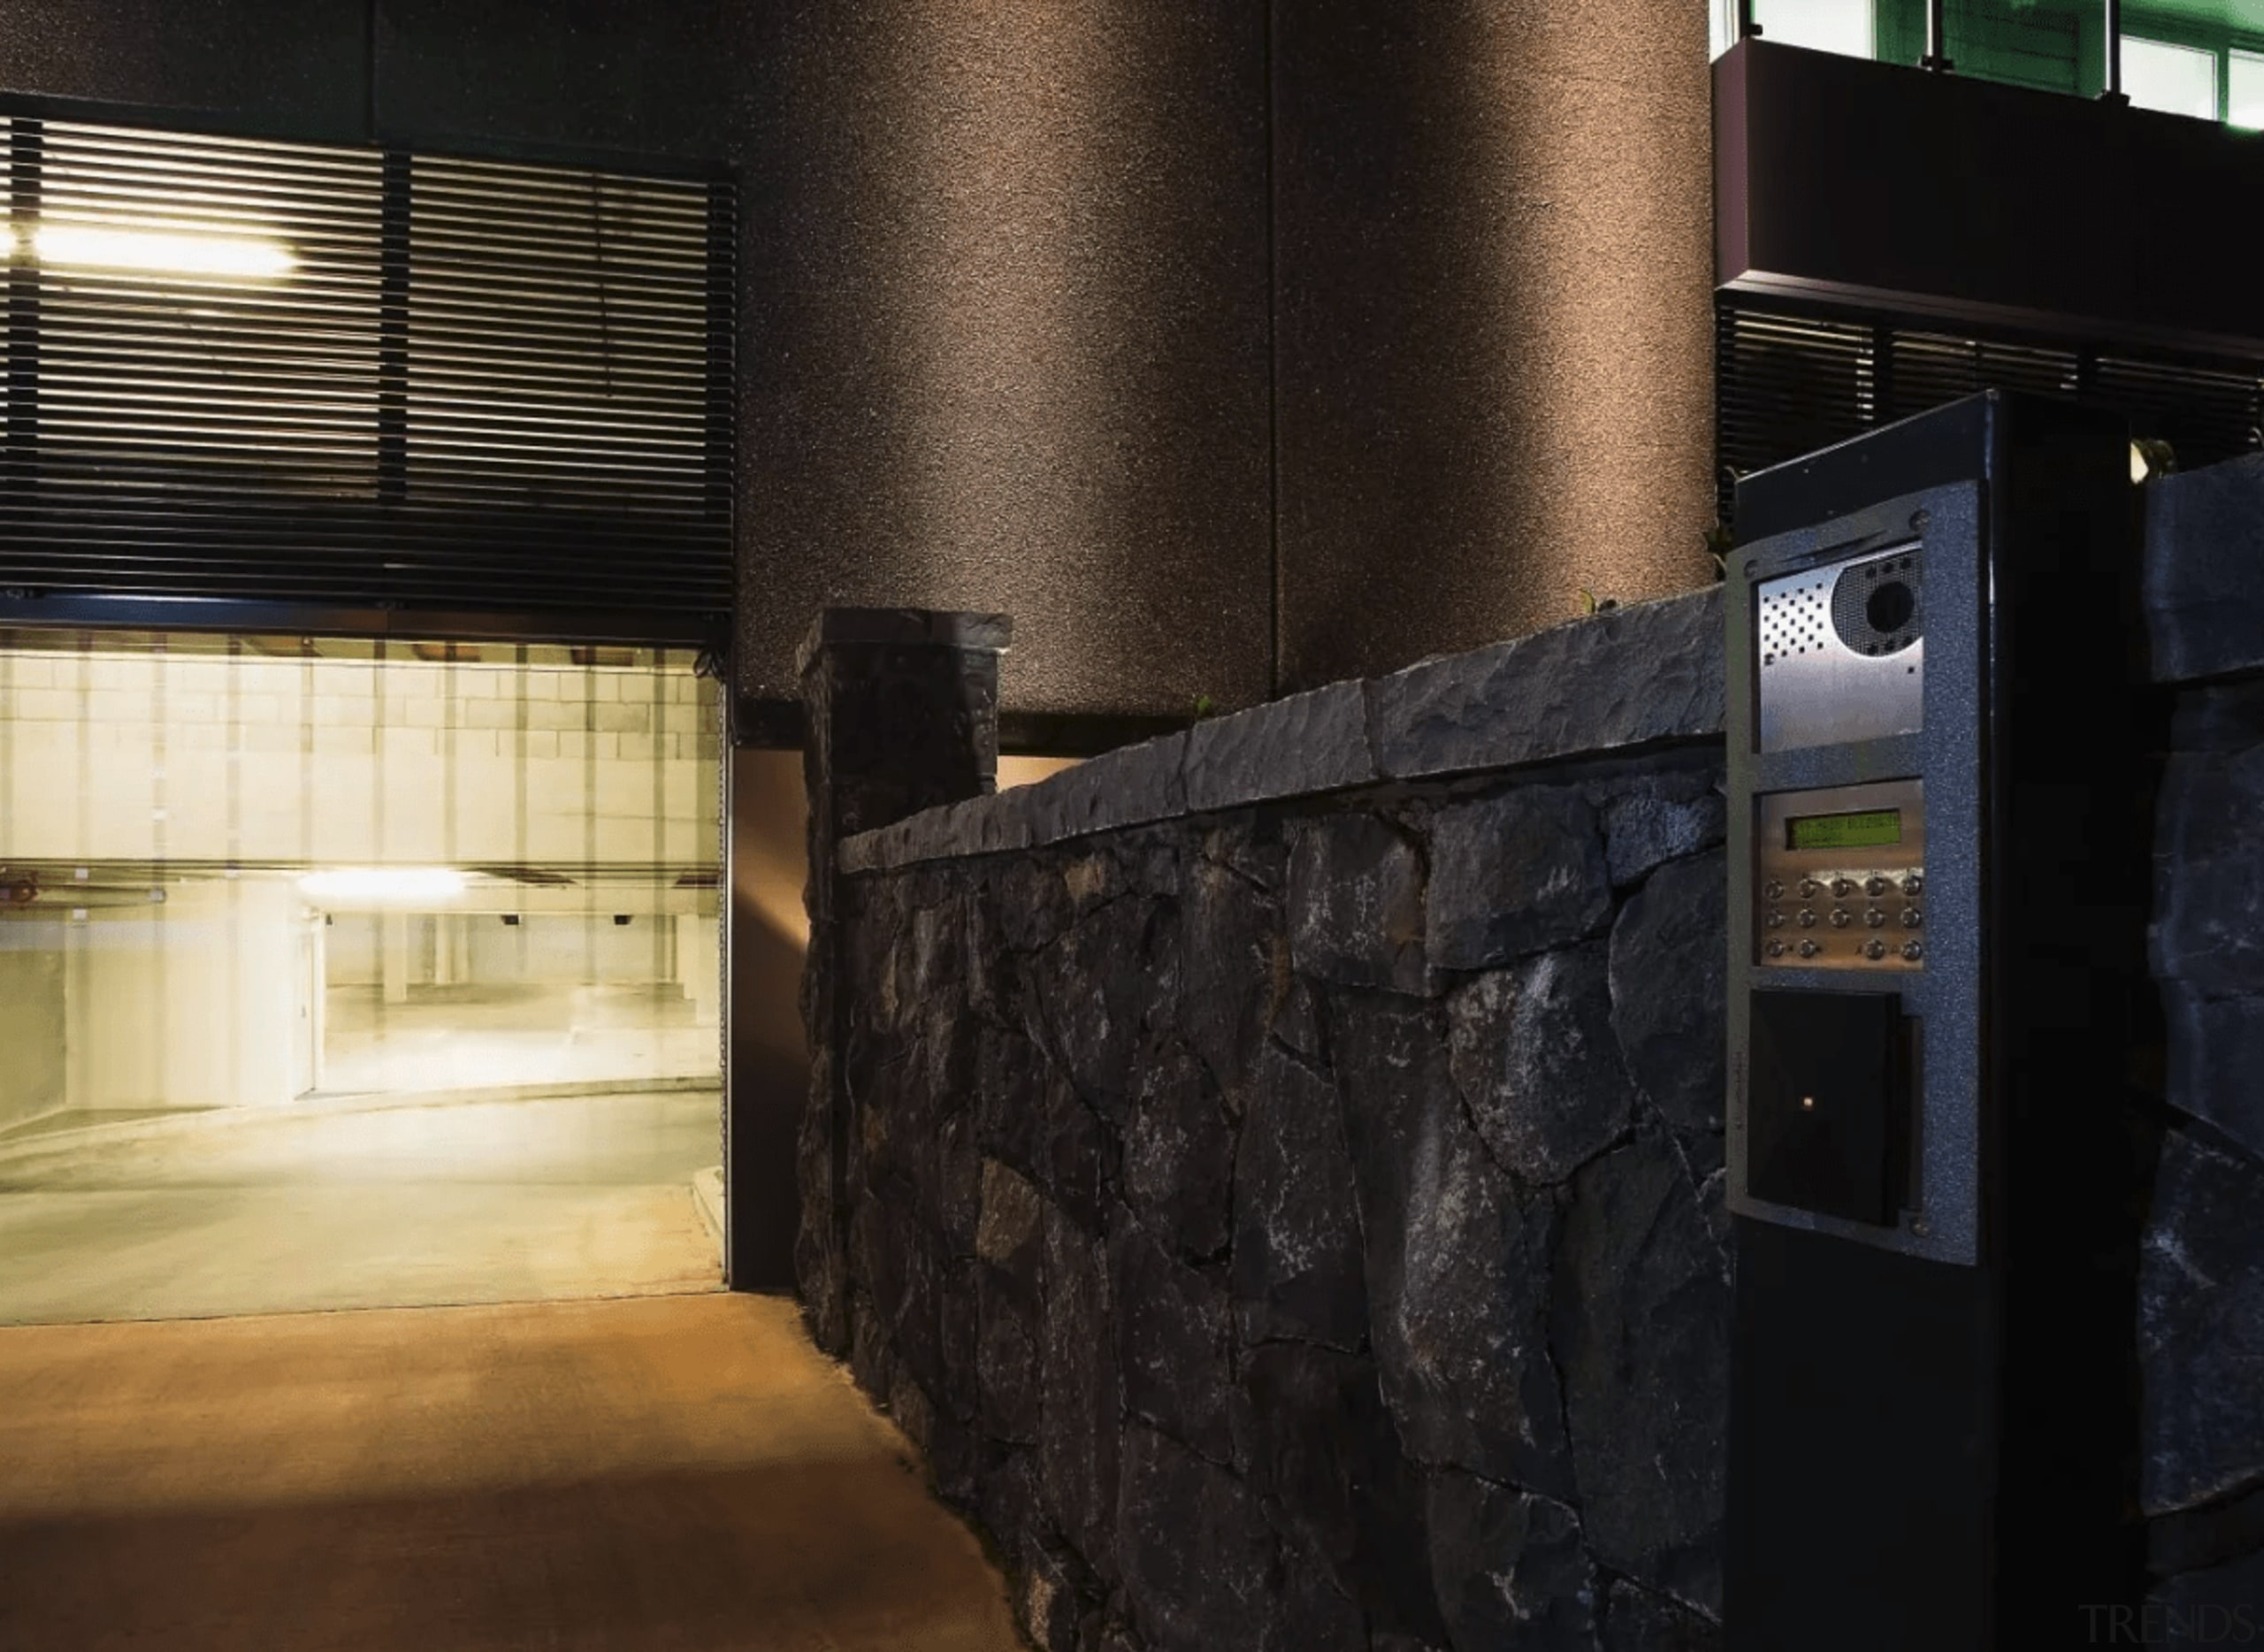 The security system provides safe carparking for staff lighting, black